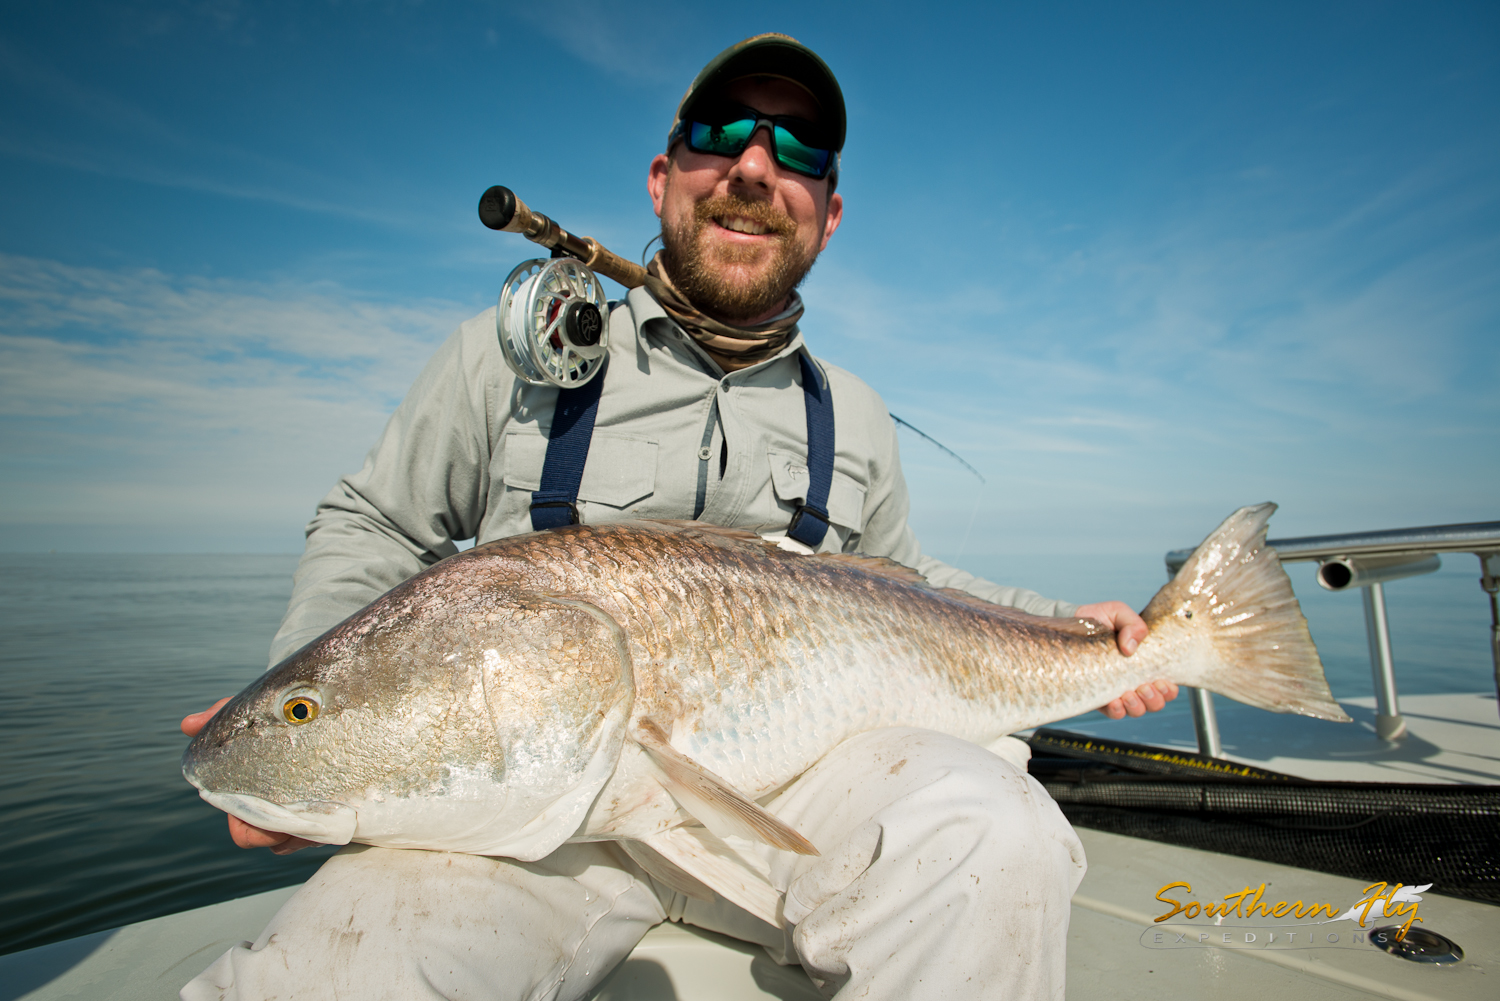 Fly fishing new orleans and light tackle fishing new orleans by southern fly expeditions llc